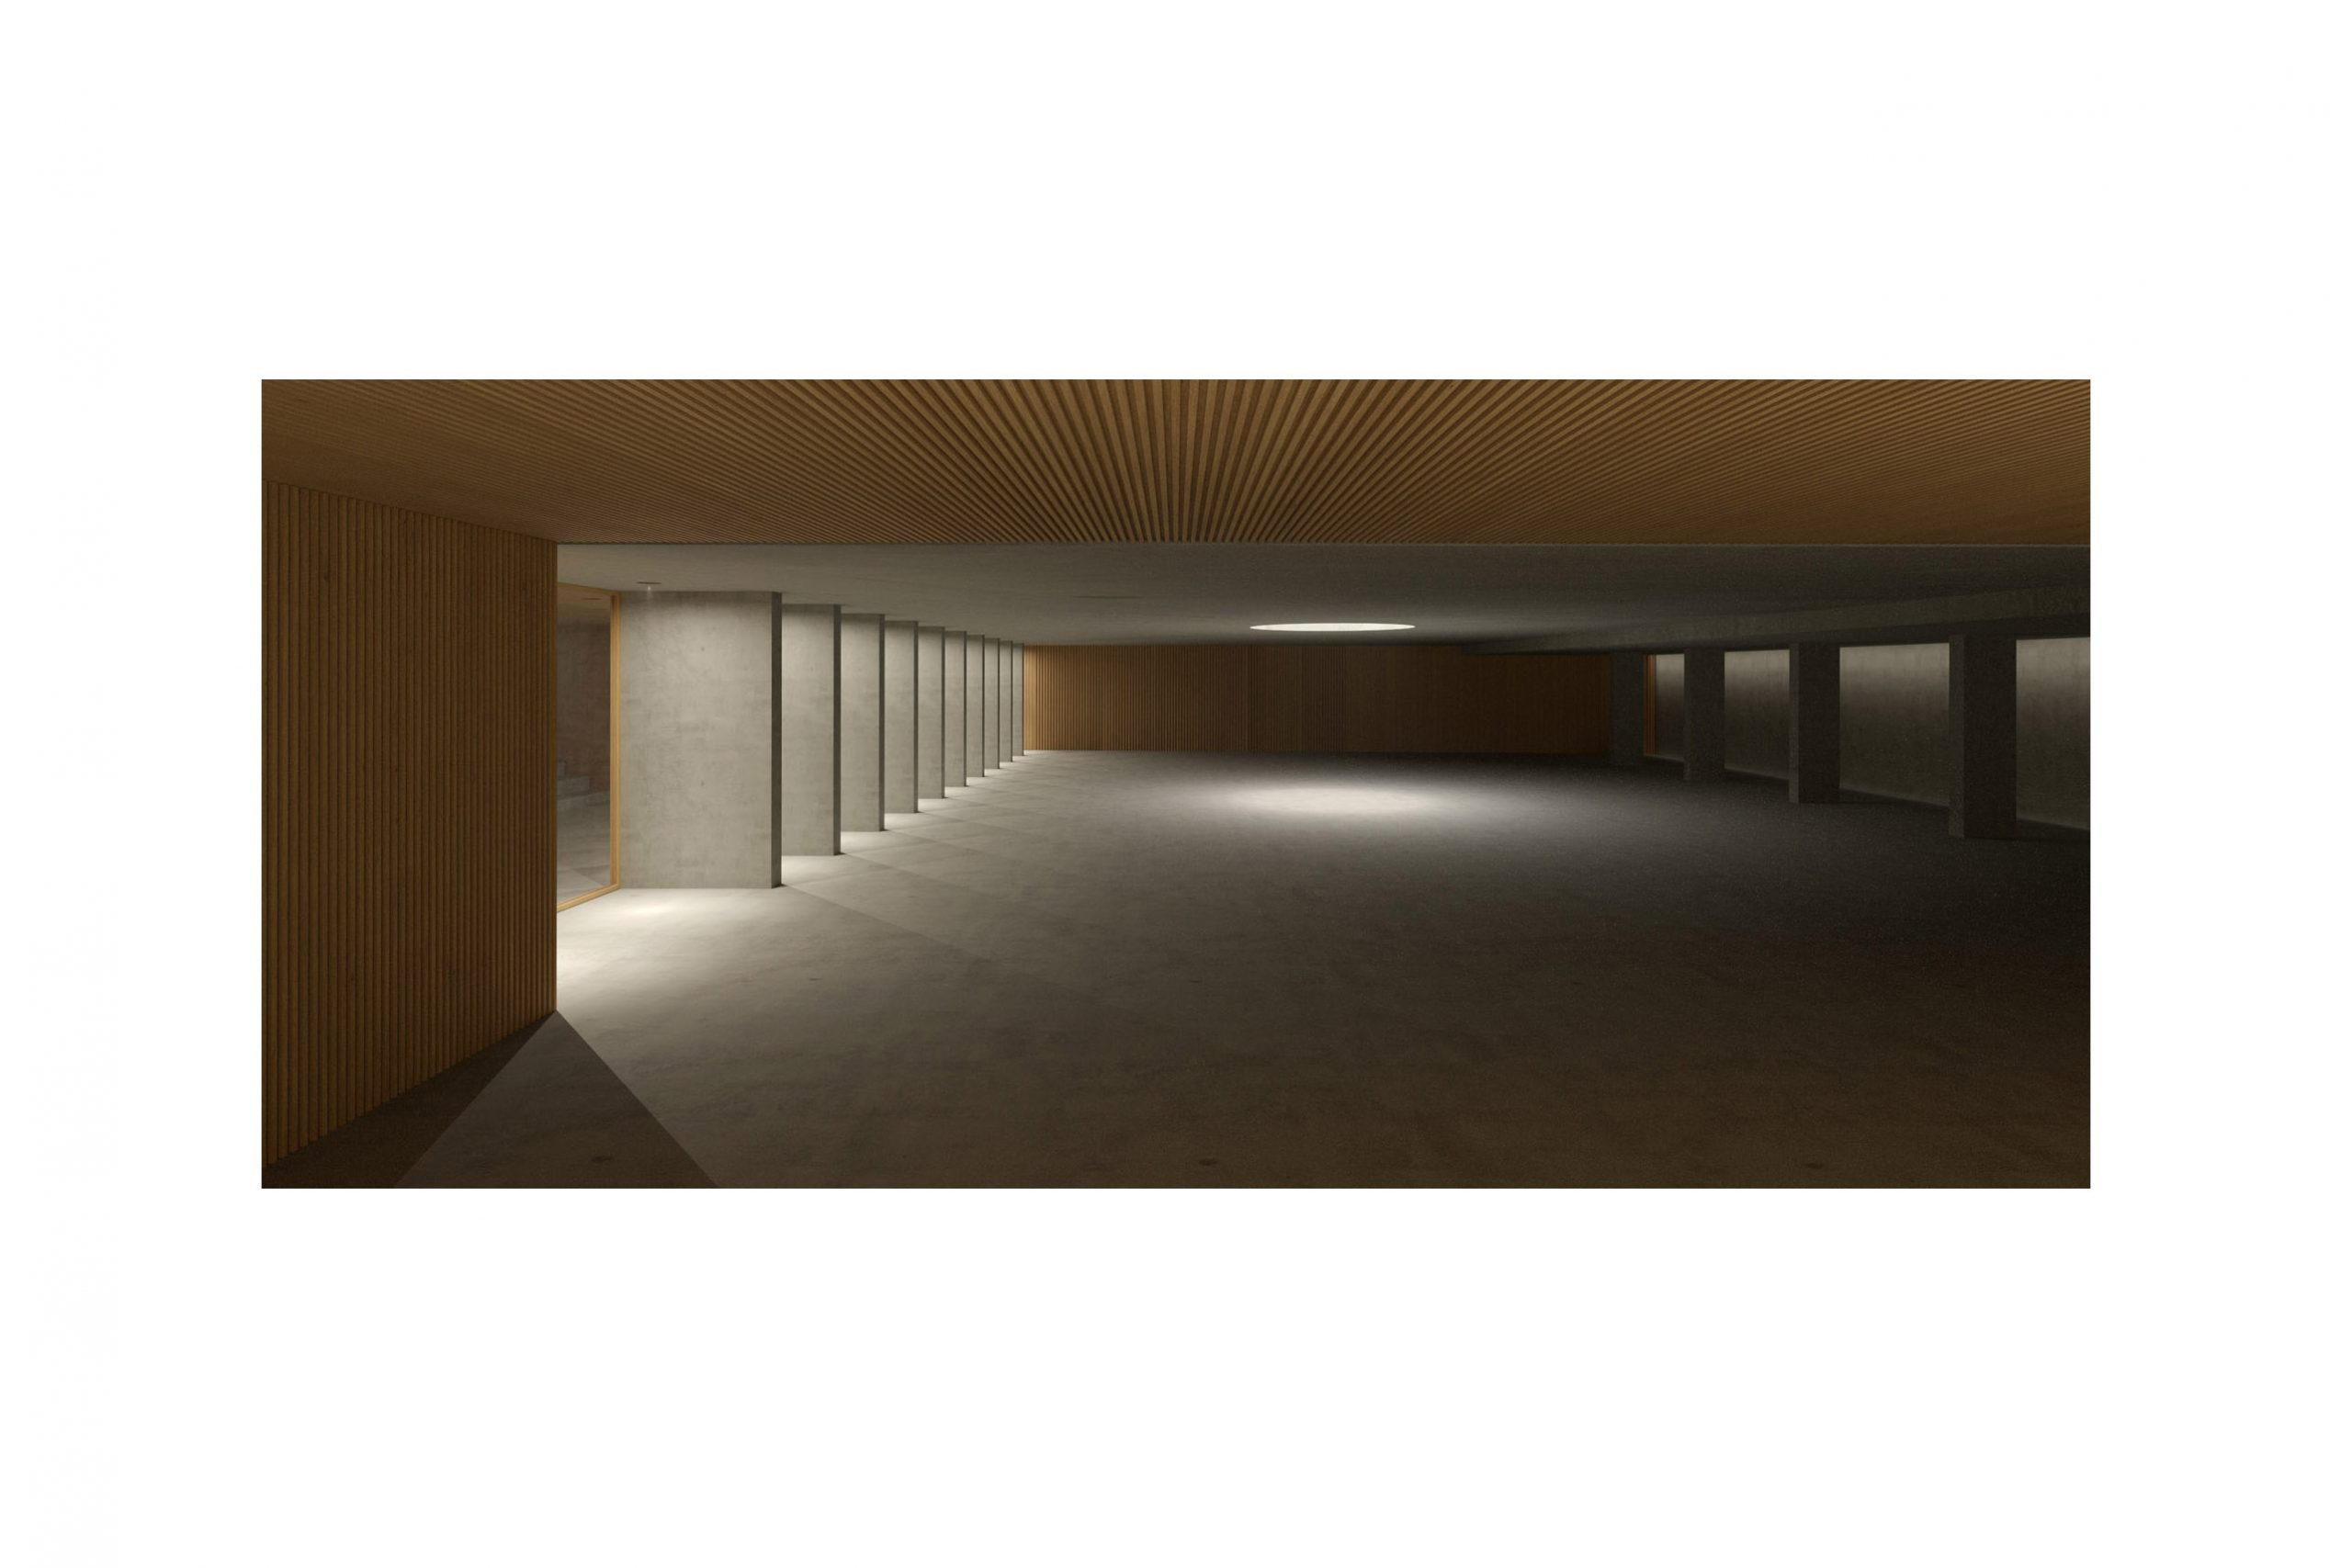 Architectural Interior Visualization for an interior garage by Philippe Meyer.